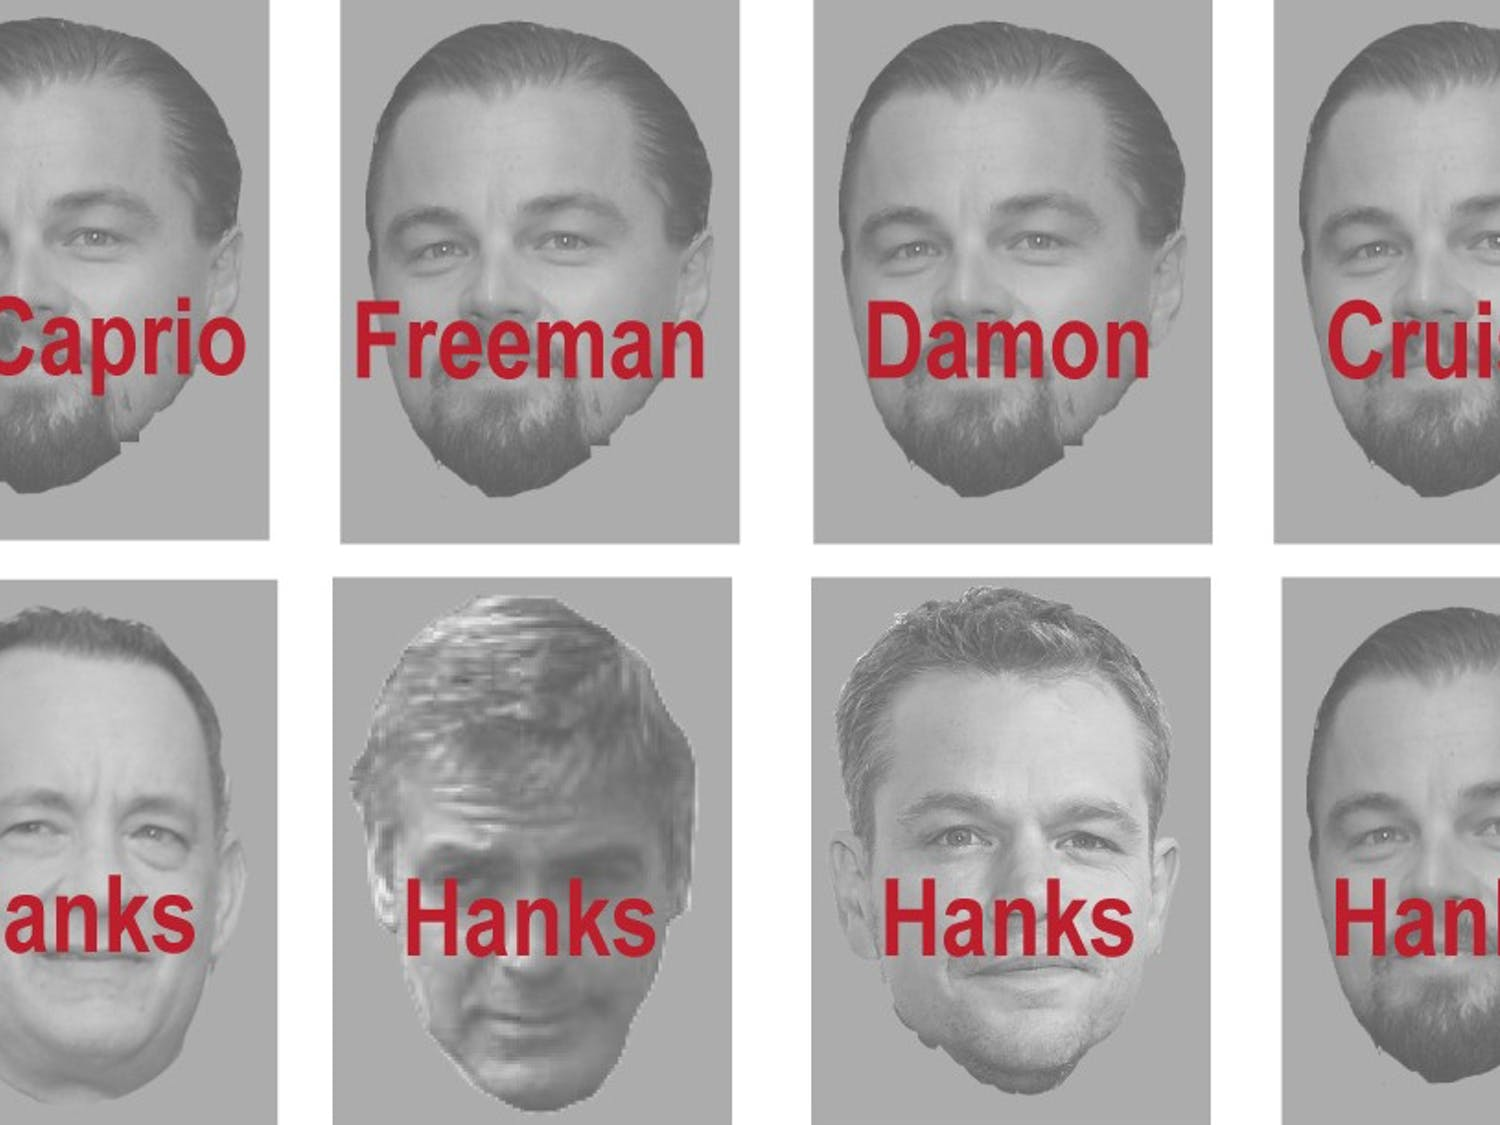 Study participants viewed pictures of famous actors with names written across their faces, some correct and some not, and had to identify each actor as quickly  as possible.